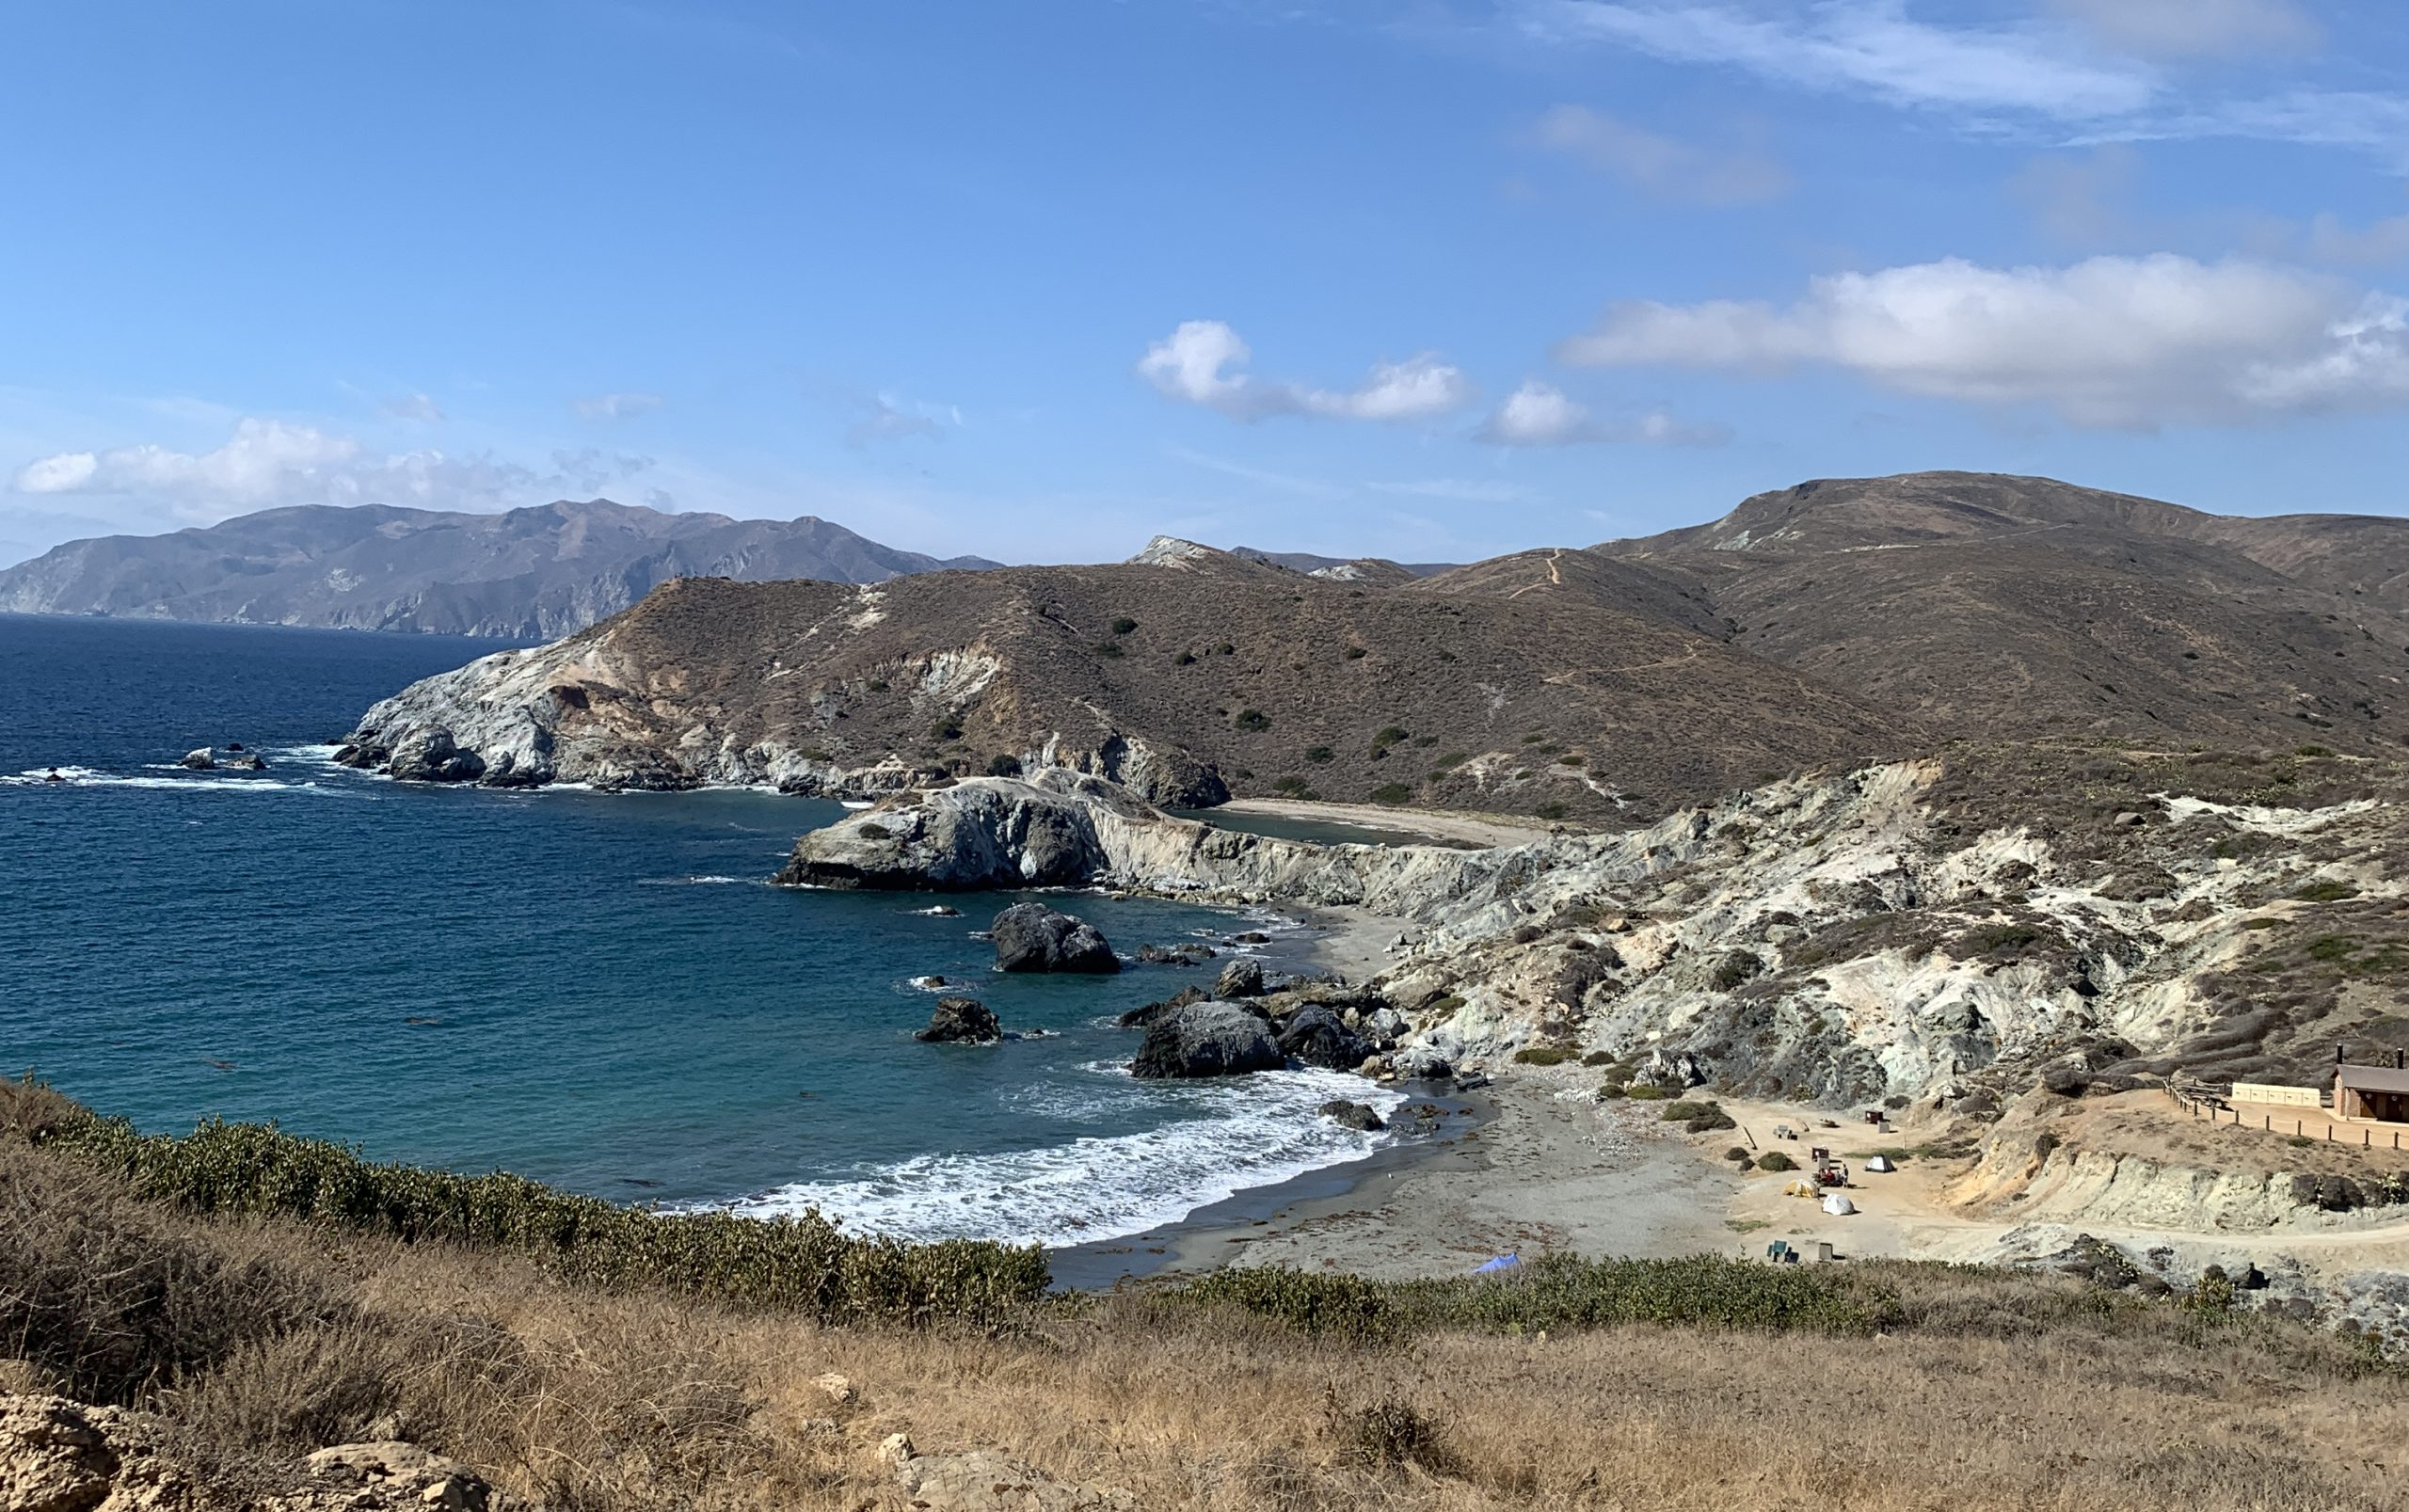 Island of Catalina Conservancy does an amazing tour of the undeveloped parts of the island. We learned about the endemic and invasive species, and the work they're doing to protect the island.   For Animals For Earth